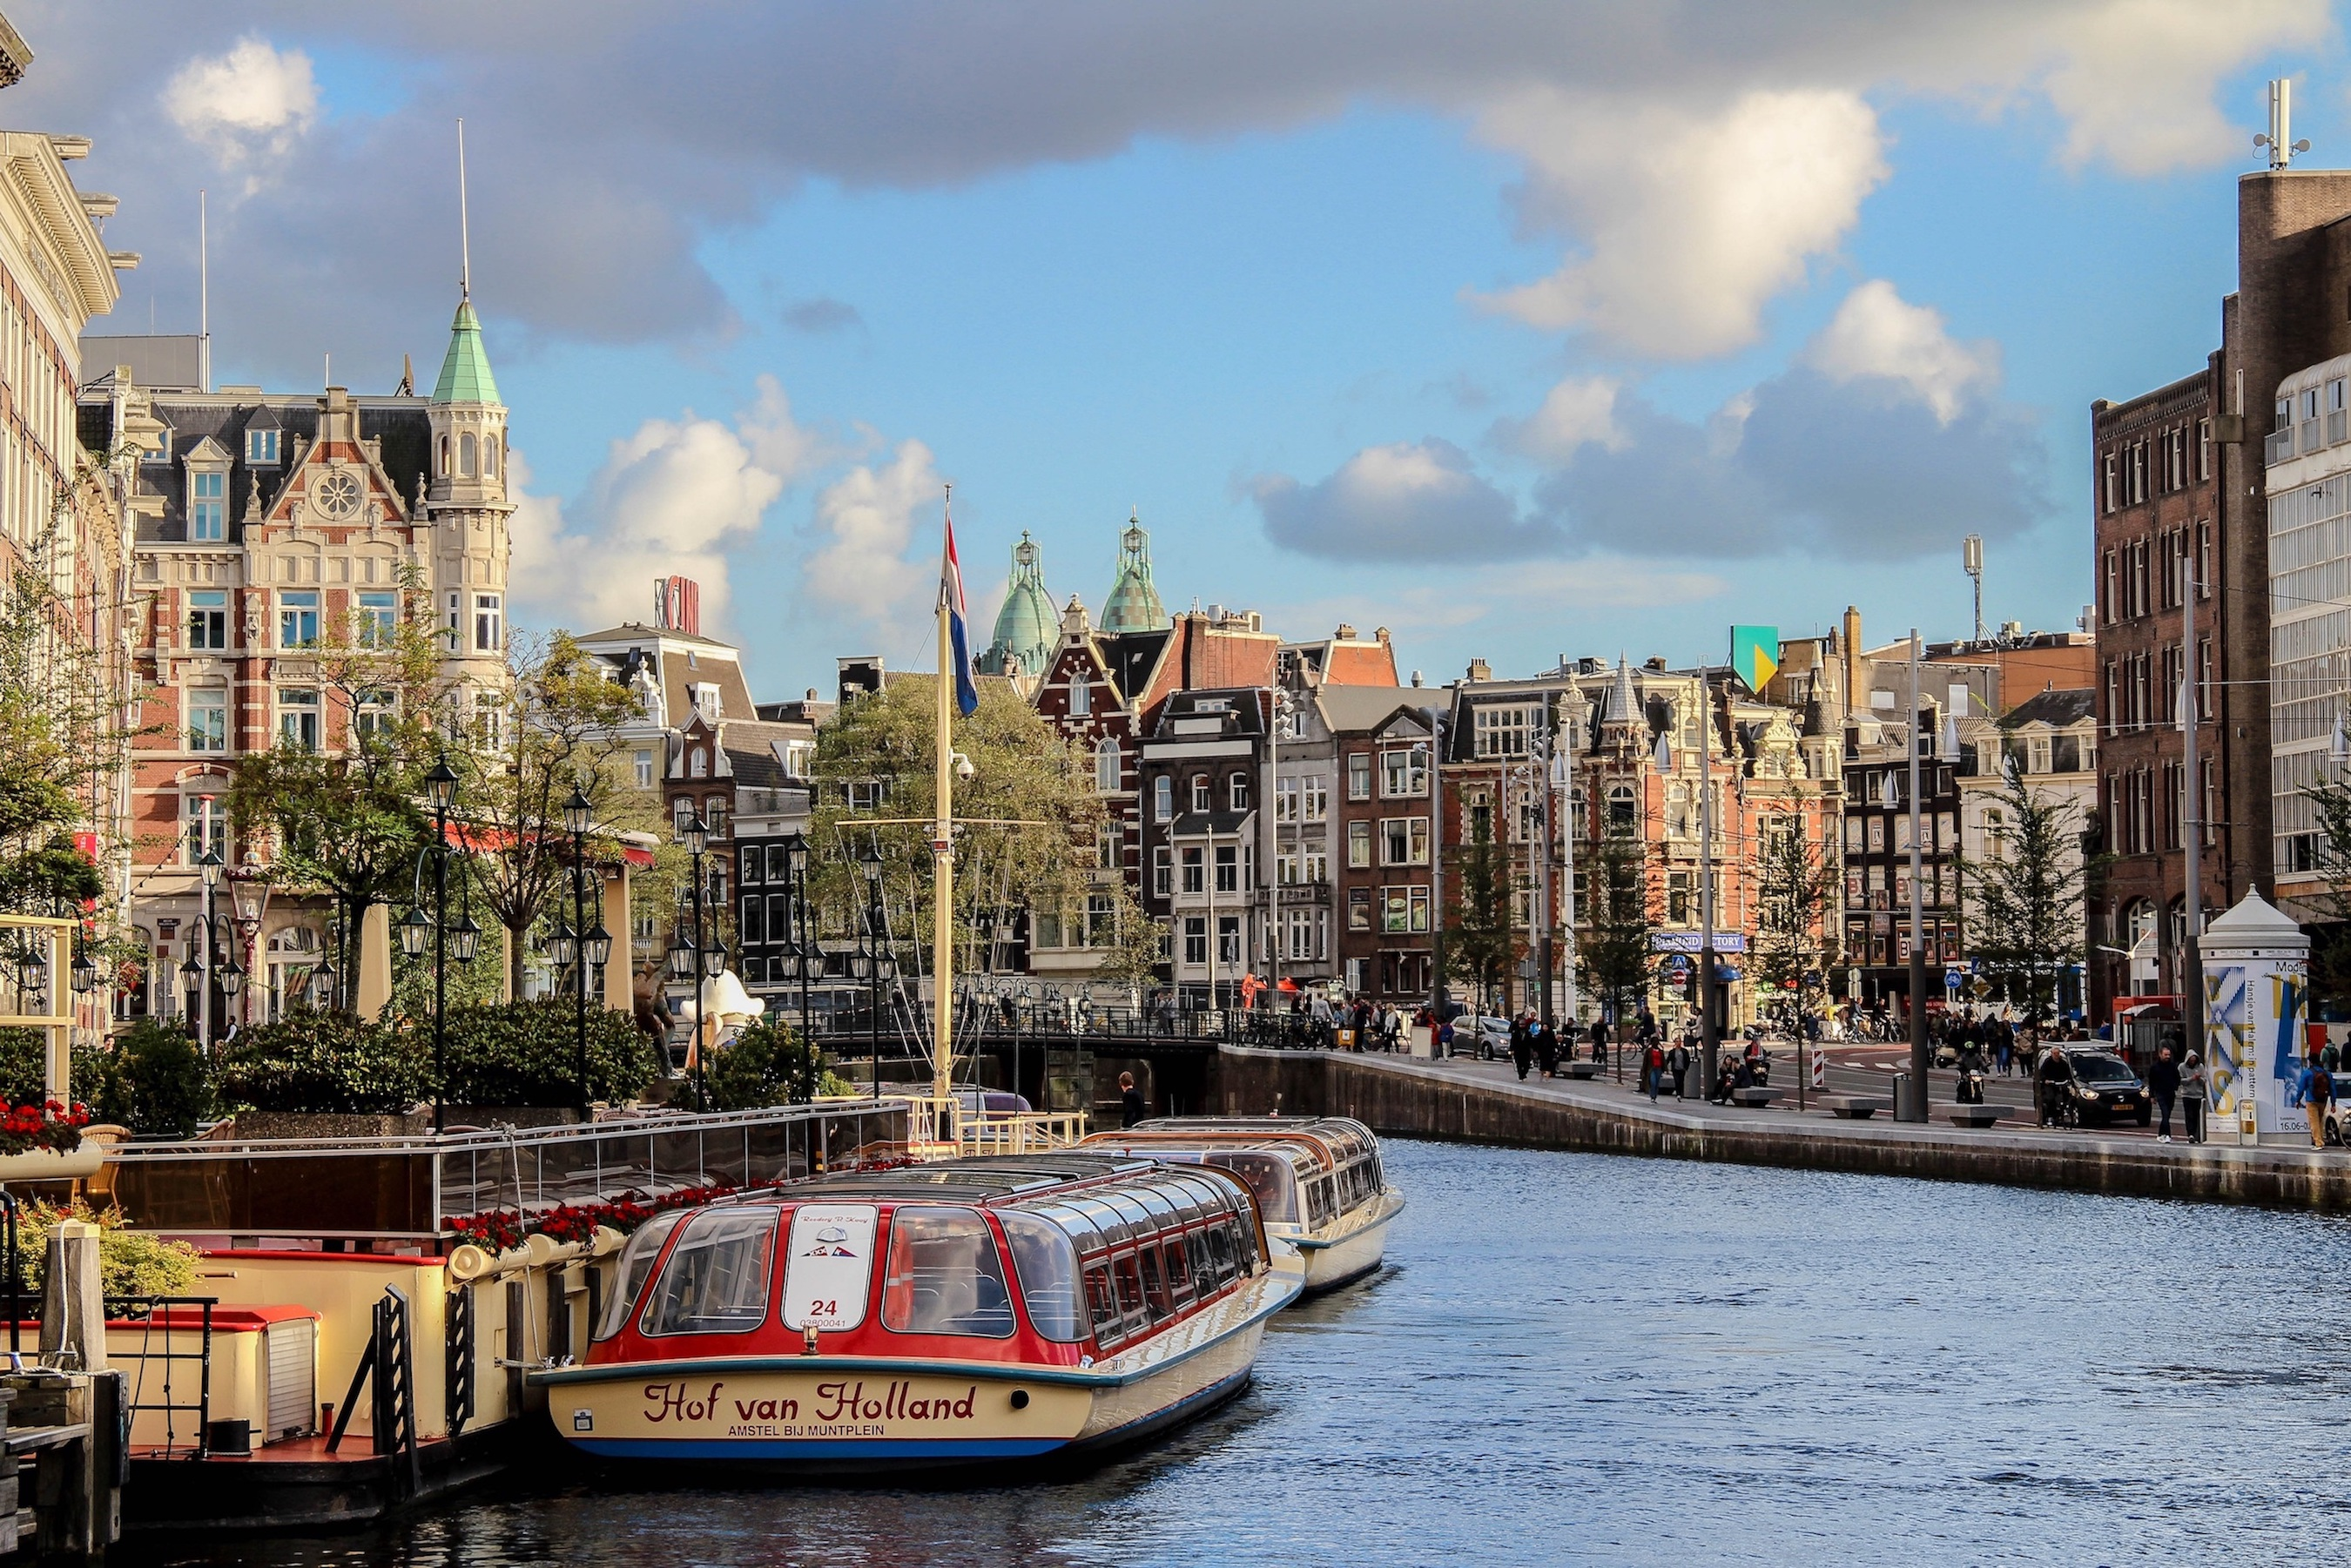 Canal Cruise is one of the most famous tour in Amsterdam, the Netherlands.